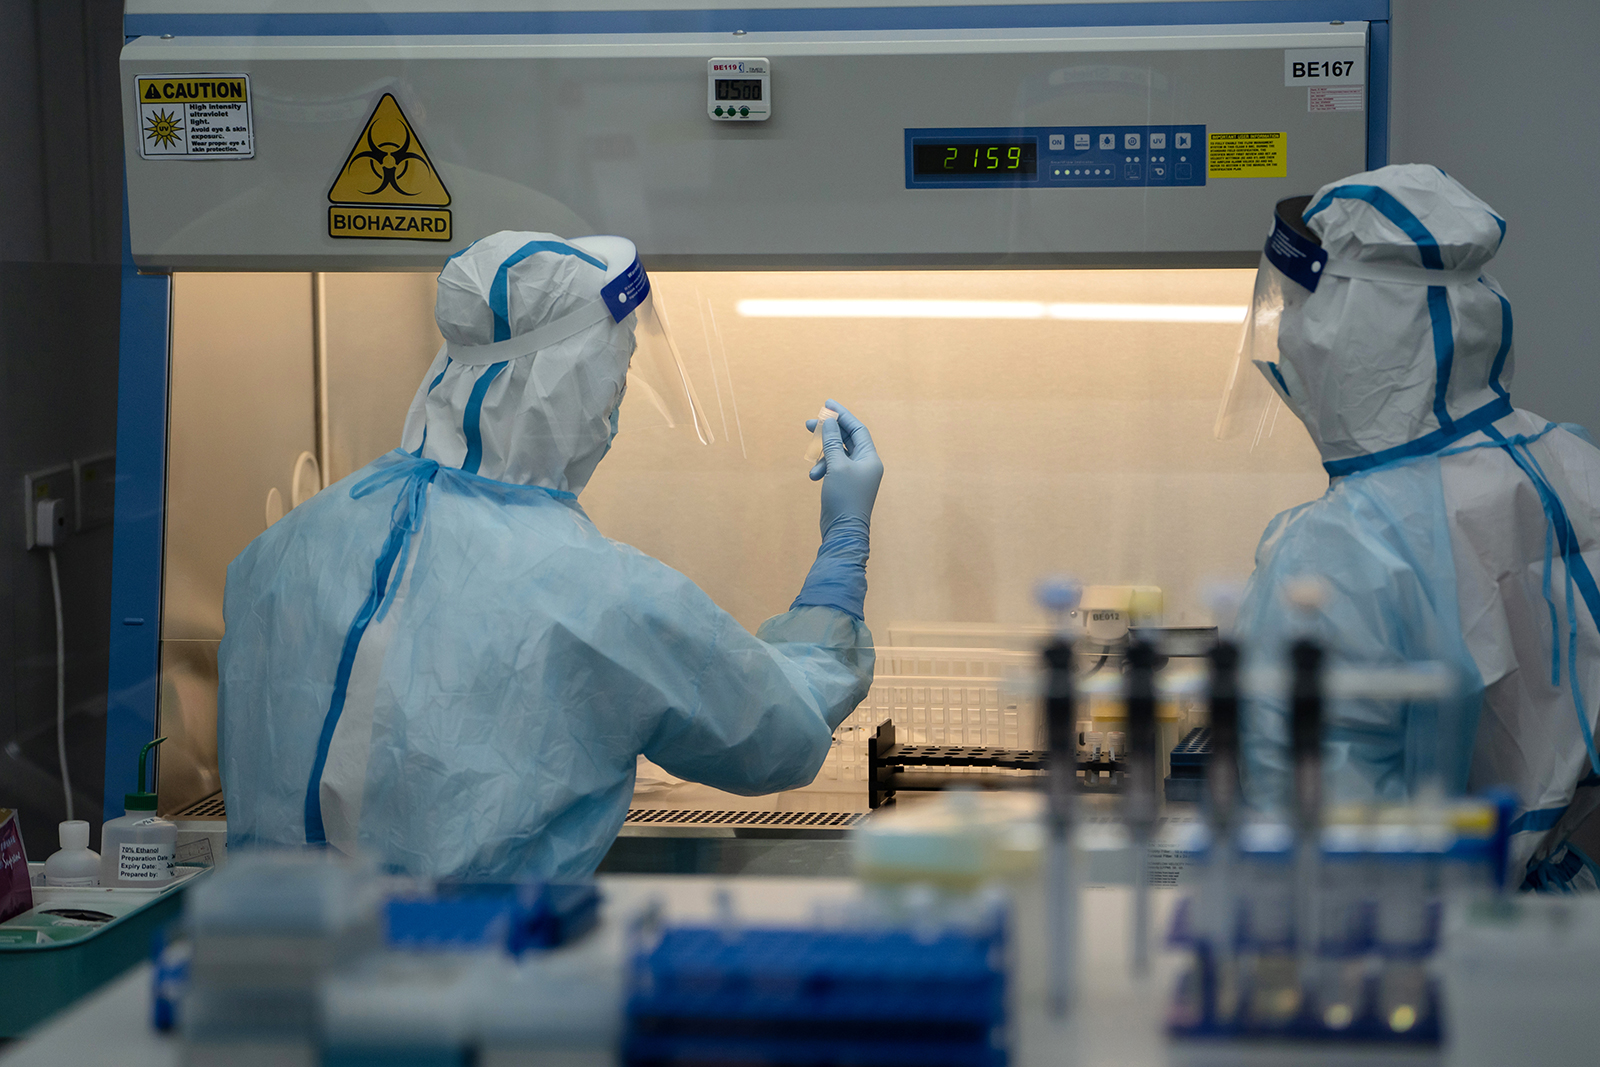 A lab technician wearing a protective suit holds up a saliva sample for RT-PCR Covid-19 testing at Prenetics Ltd.'s laboratory in Hong Kong, China on July 31.